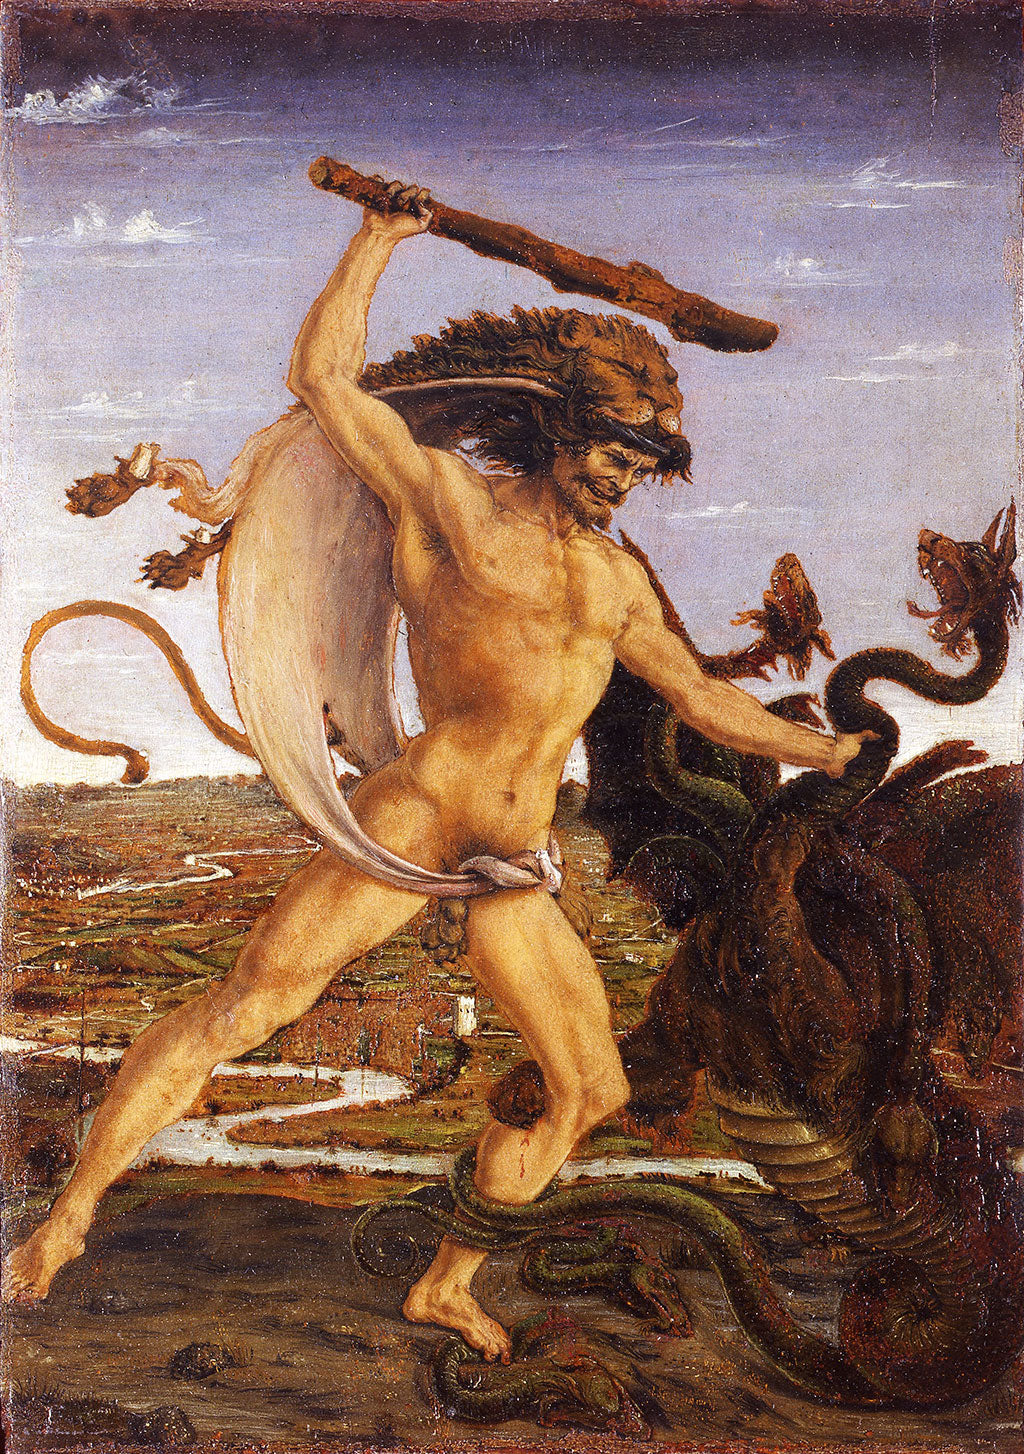 Pollaiolo's masterpiece depicting Hercules and the Hydra of Lerna